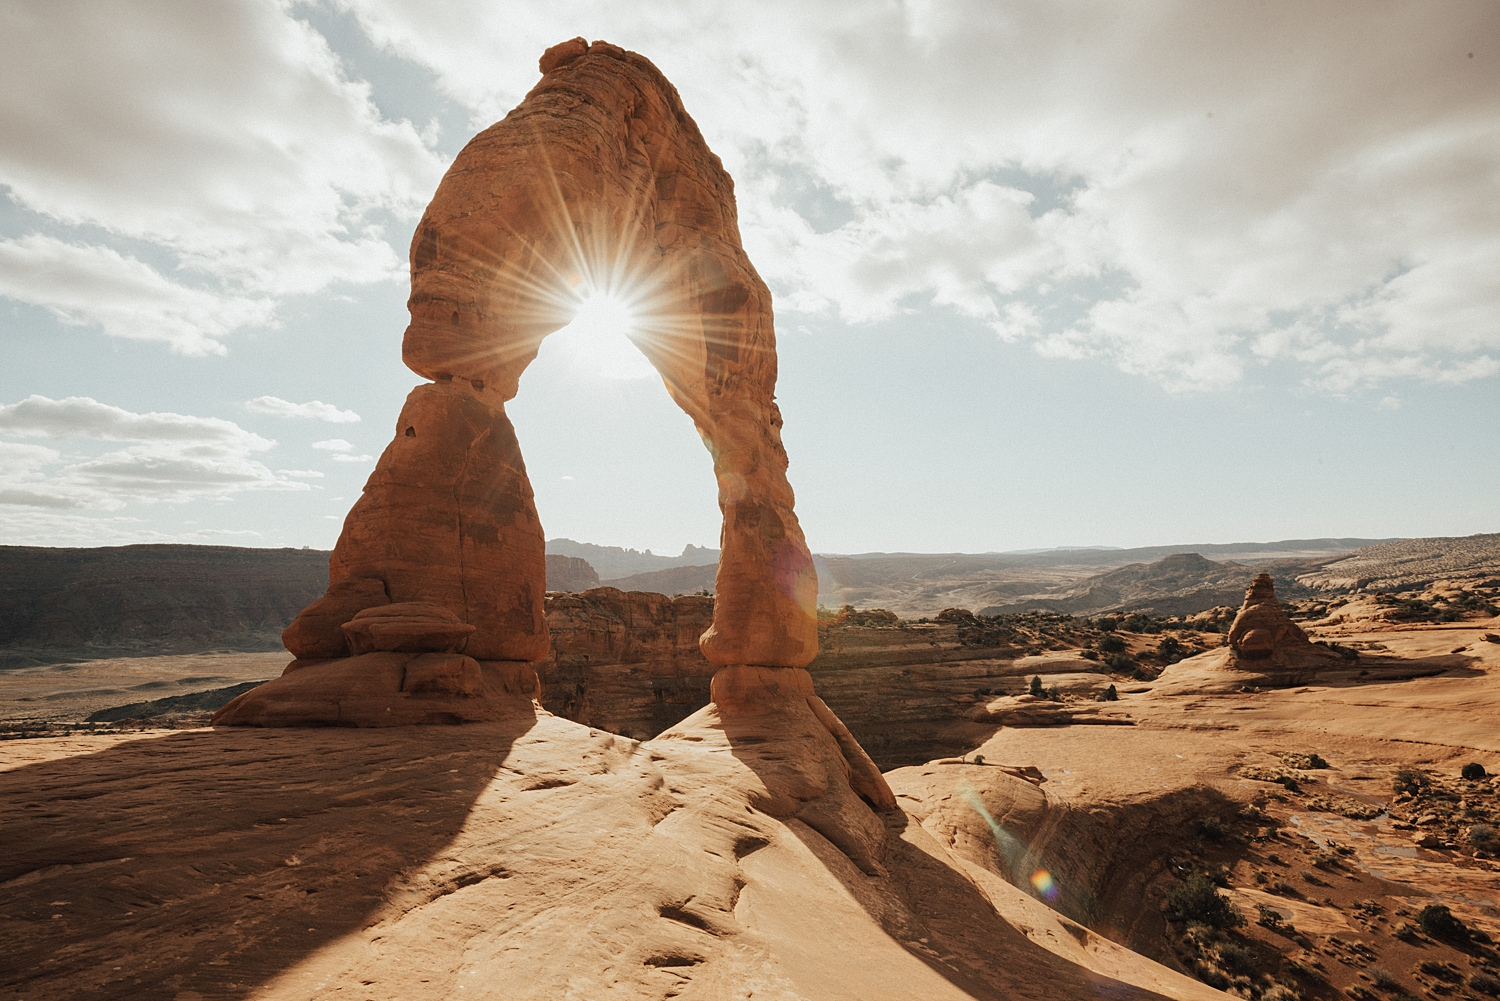 MARS  But if that's a little out of the way for family or friends then definitely check out parts of Utah, Arizona, New Mexico… America's wild west has so much to offer!